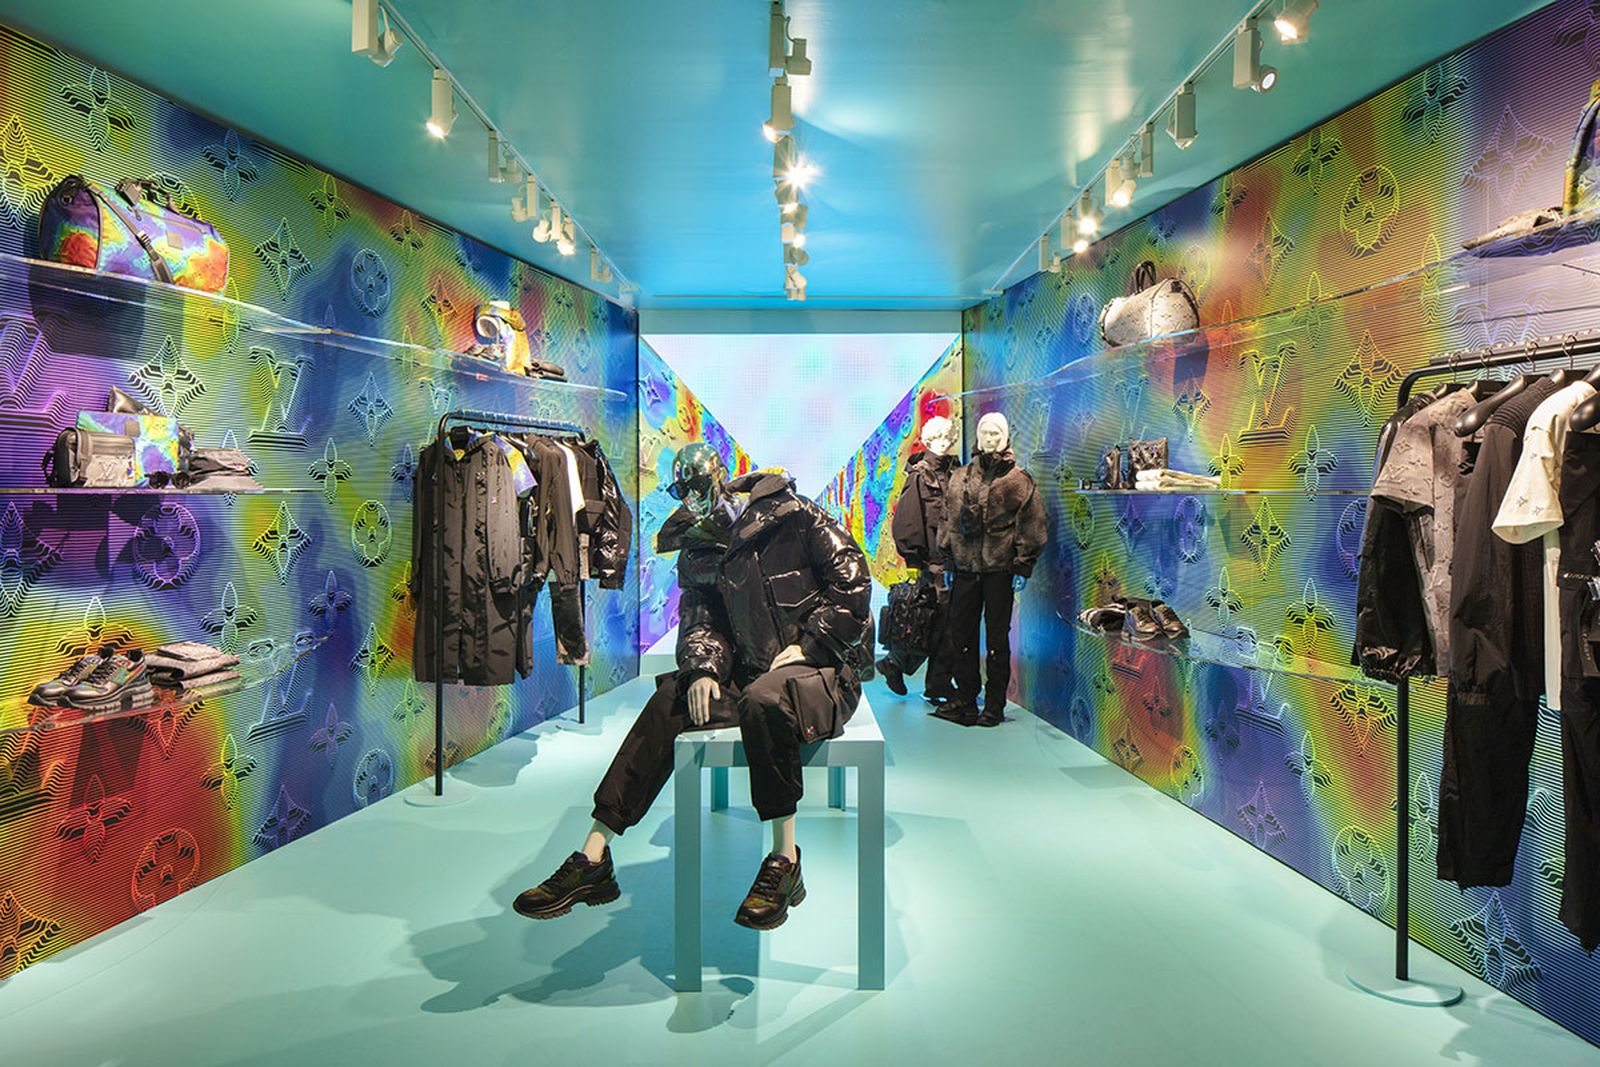 Louis Vuitton 2054 Soho pop-up shop